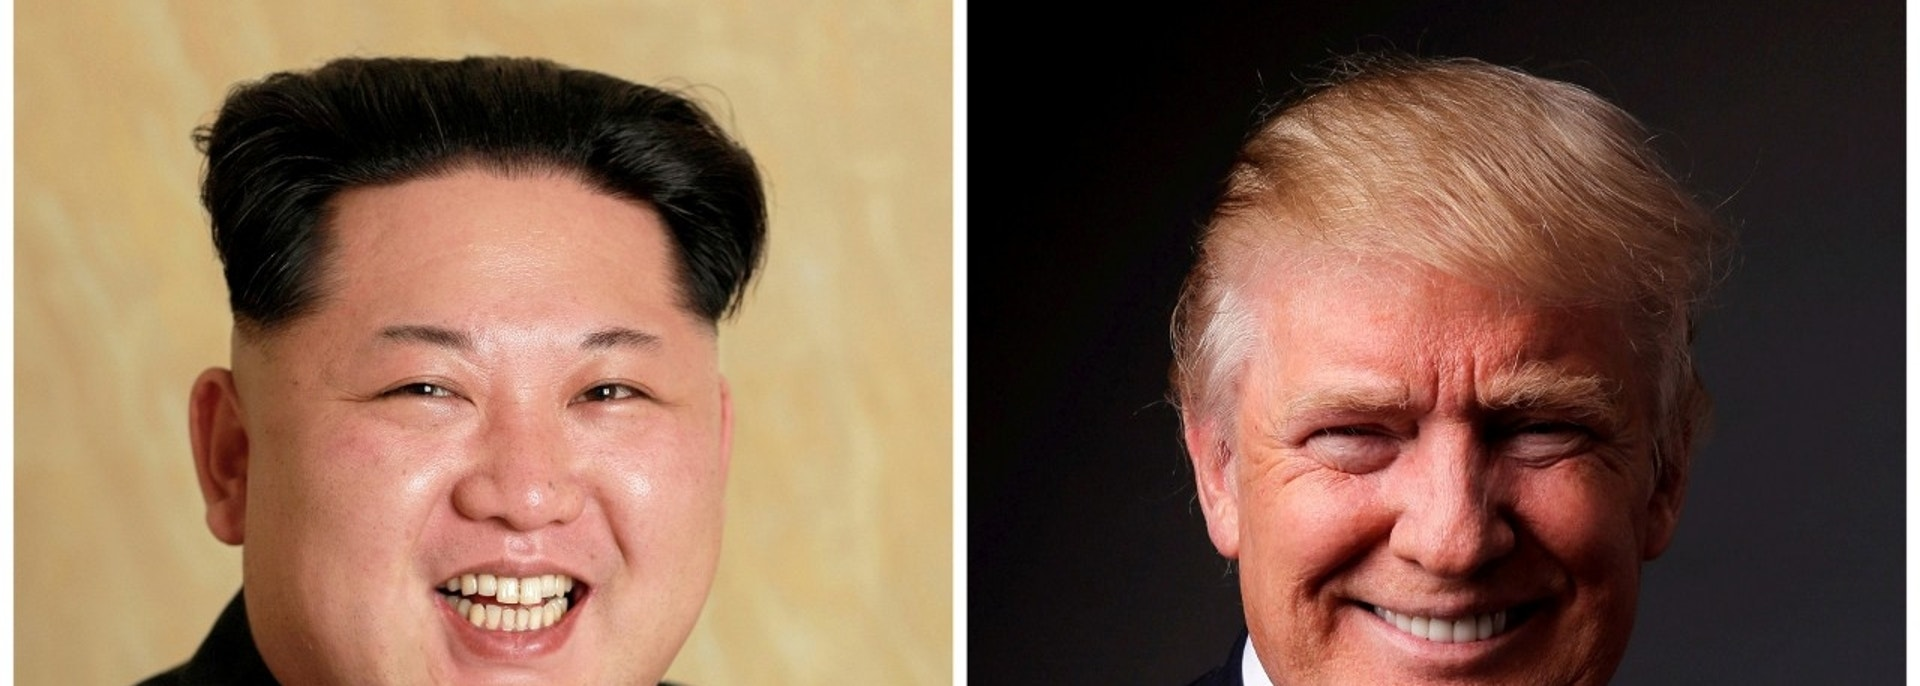 FILE PHOTOS: A combination photo shows a Korean Central News Agency (KCNA) handout of North Korean leader Kim Jong Un released on May 10, 2016, and Republican U.S. presidential candidate Donald Trump posing for a photo after an interview with Reuters in his office in Trump Tower, in the Manhattan borough of New York City, U.S., May 17, 2016. REUTERS/KCNA handout via Reuters/File Photo & REUTERS/Lucas Jackson/File Photo ATTENTION EDITORS - THE KCNA IMAGE WAS PROVIDED BY A THIRD PARTY. EDITORIAL USE ONLY. REUTERS IS UNABLE TO INDEPENDENTLY VERIFY THIS IMAGE. NO THIRD PARTY SALES. NOT FOR USE BY REUTERS THIRD PARTY DISTRIBUTORS. SOUTH KOREA OUT. NO COMMERCIAL OR EDITORIAL SALES IN SOUTH KOREA. - RC13A4D9B6B0